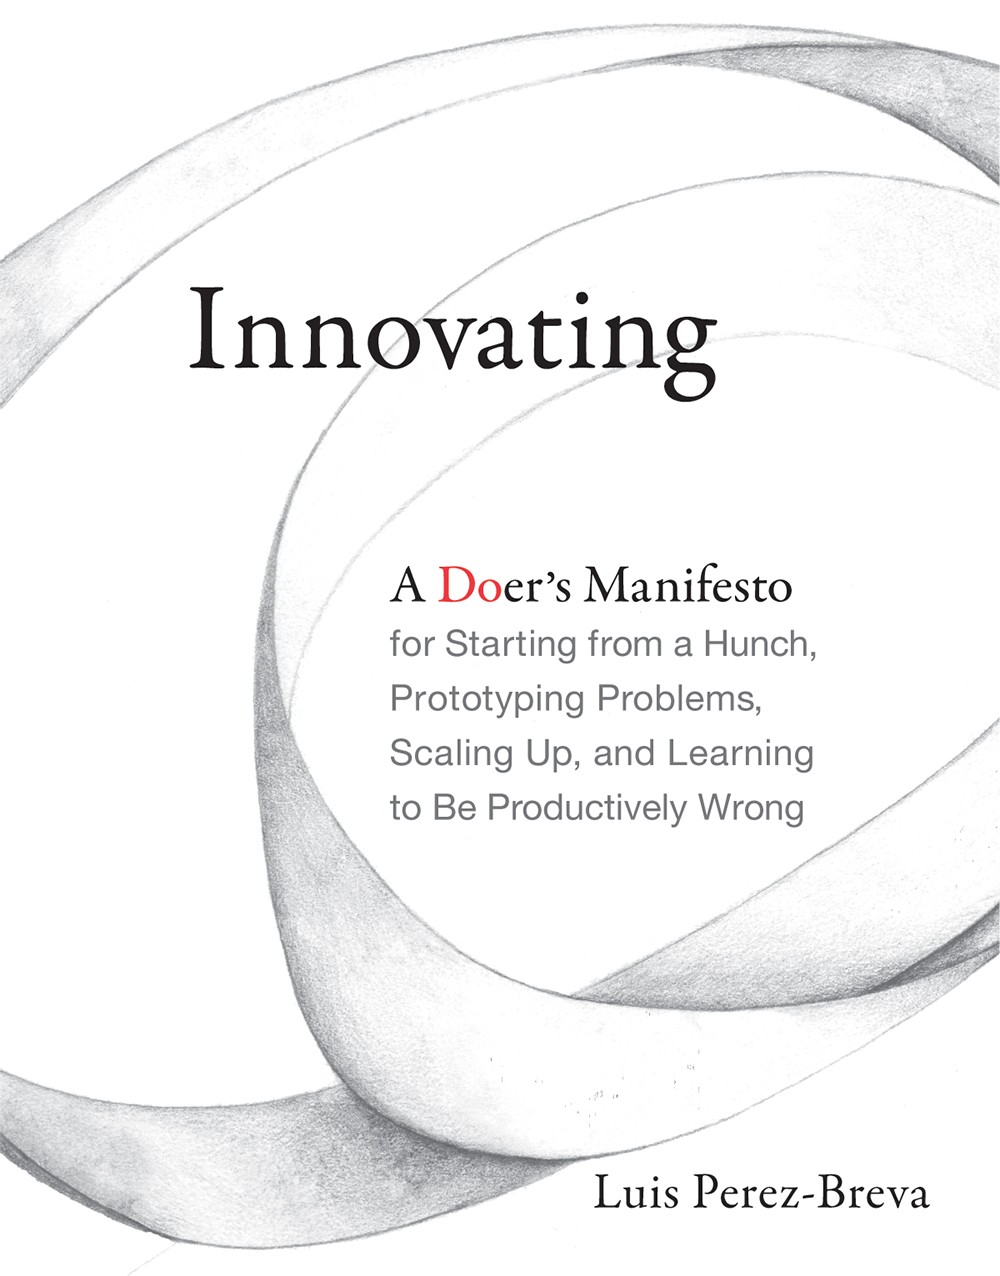 An excerpt from Innovating by Luis Perez-Brava